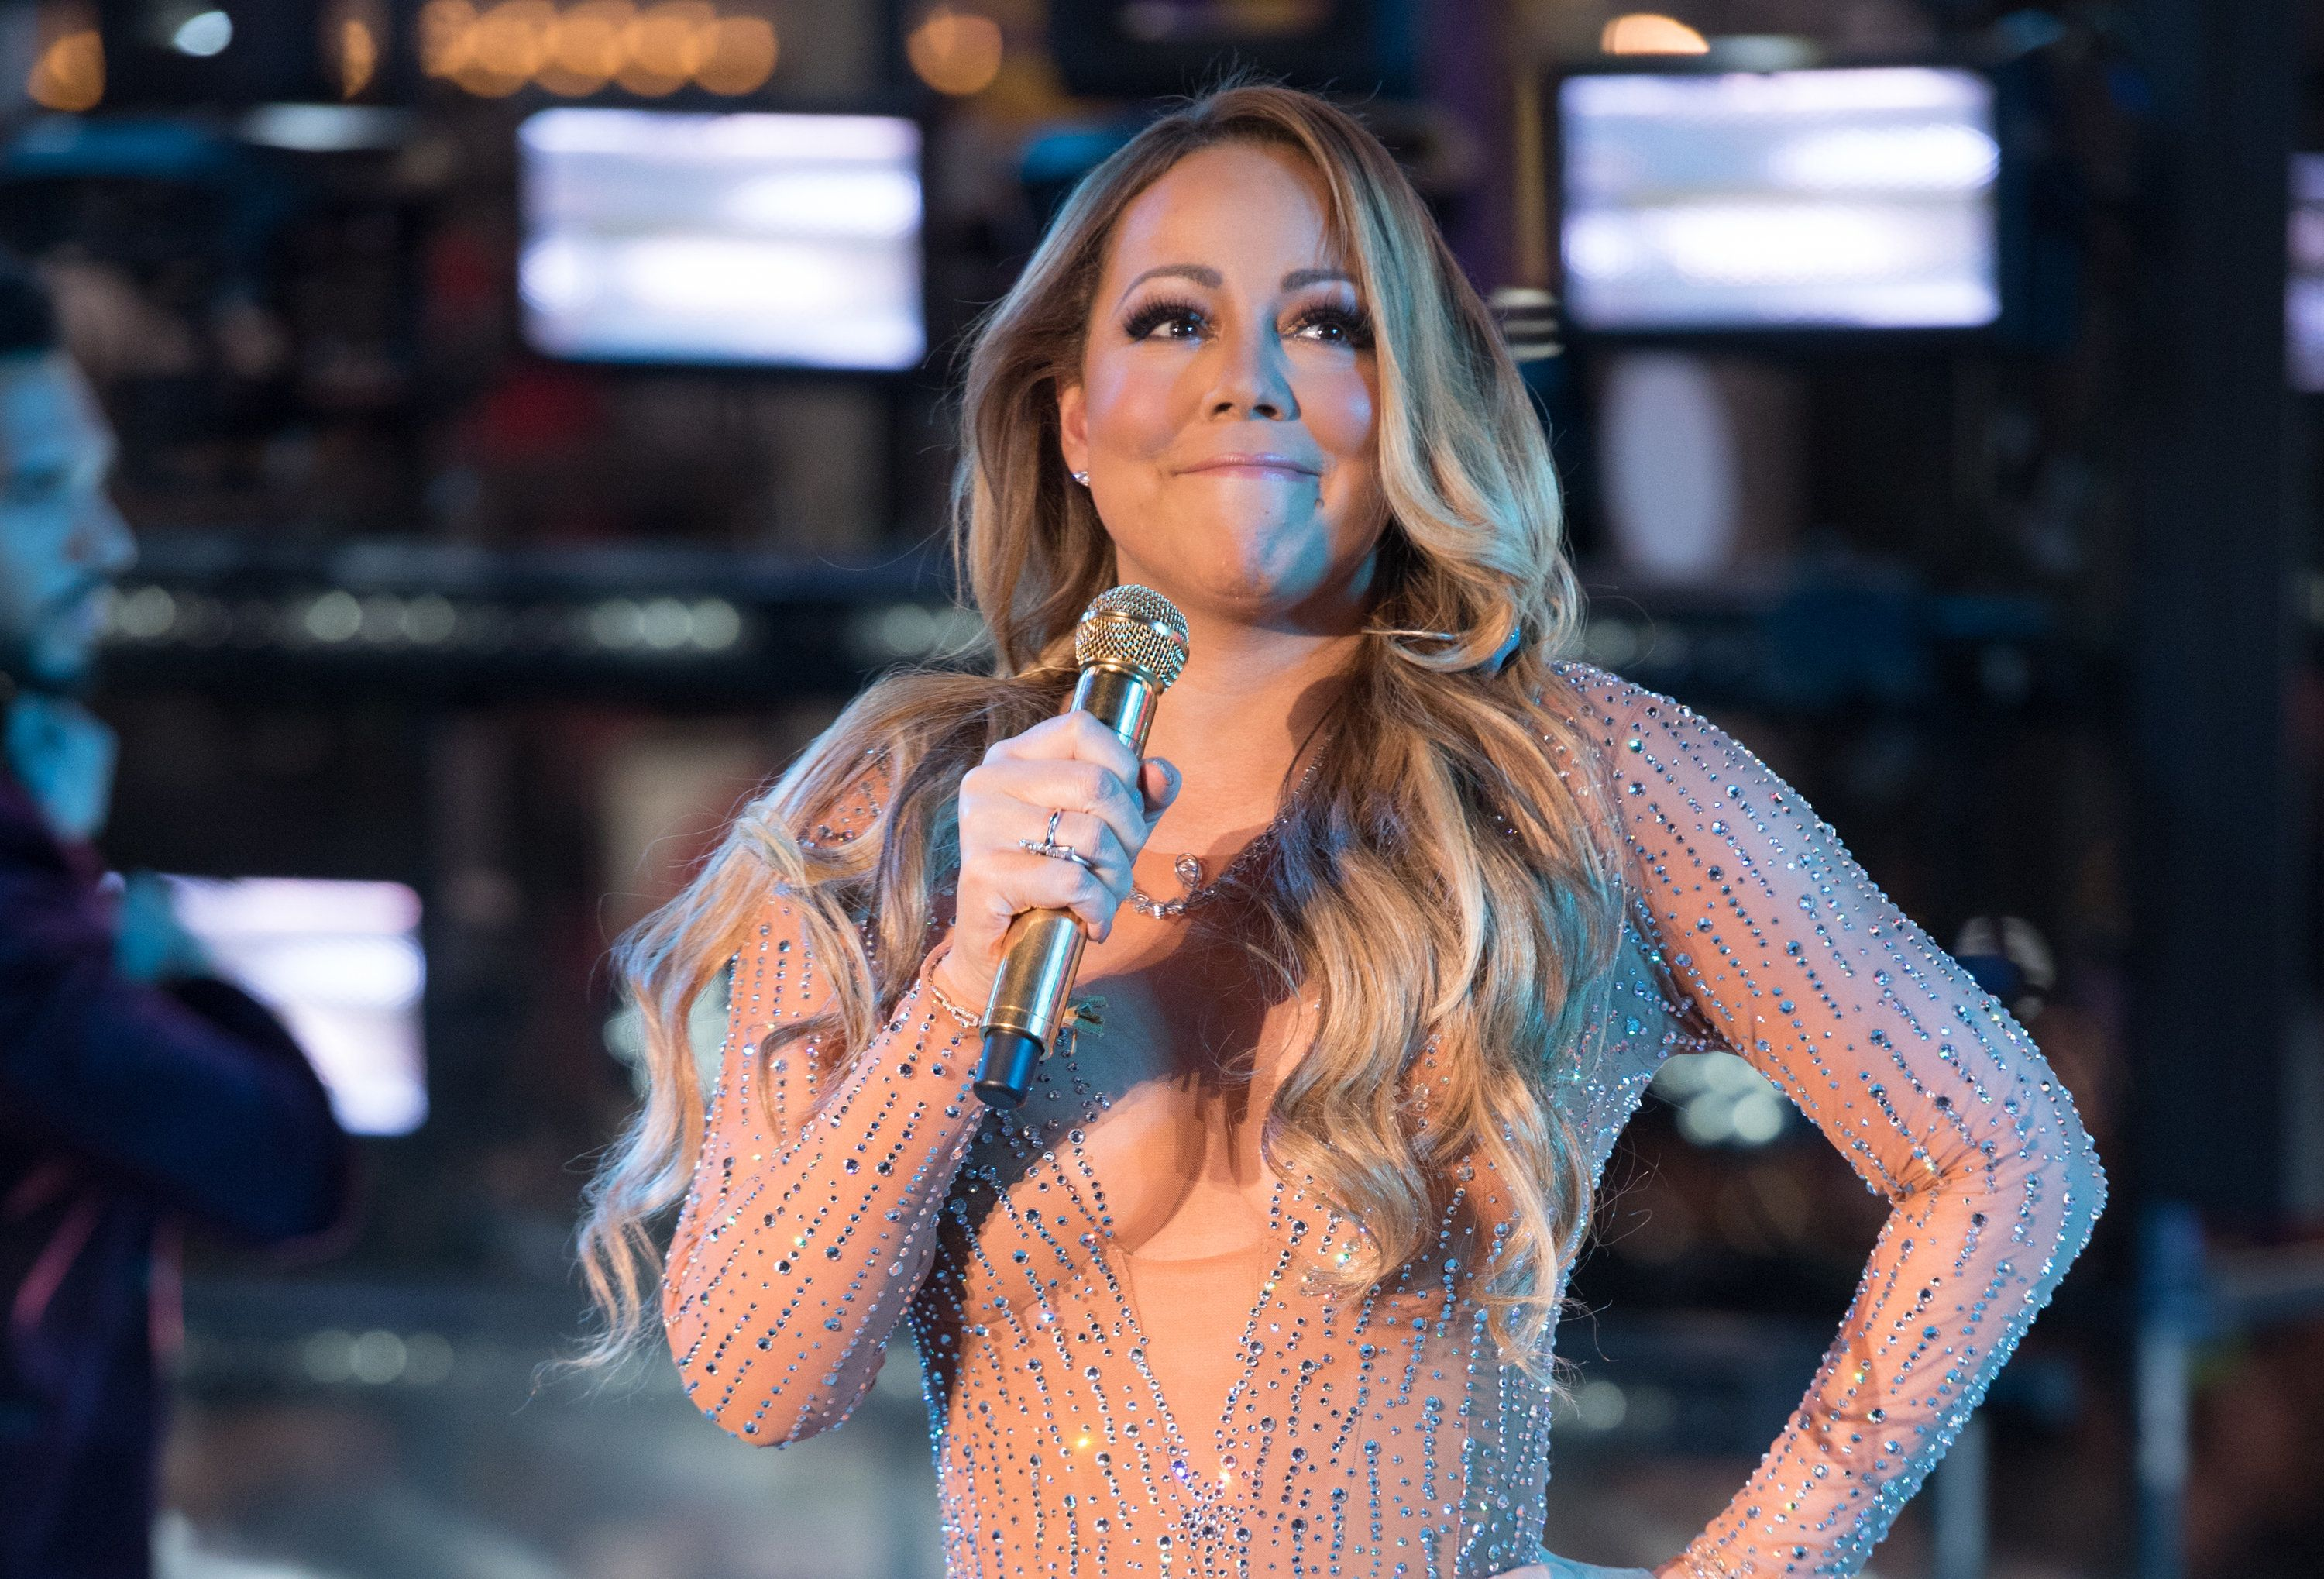 Mariah Carey's New Year's Eve performance was blighted by